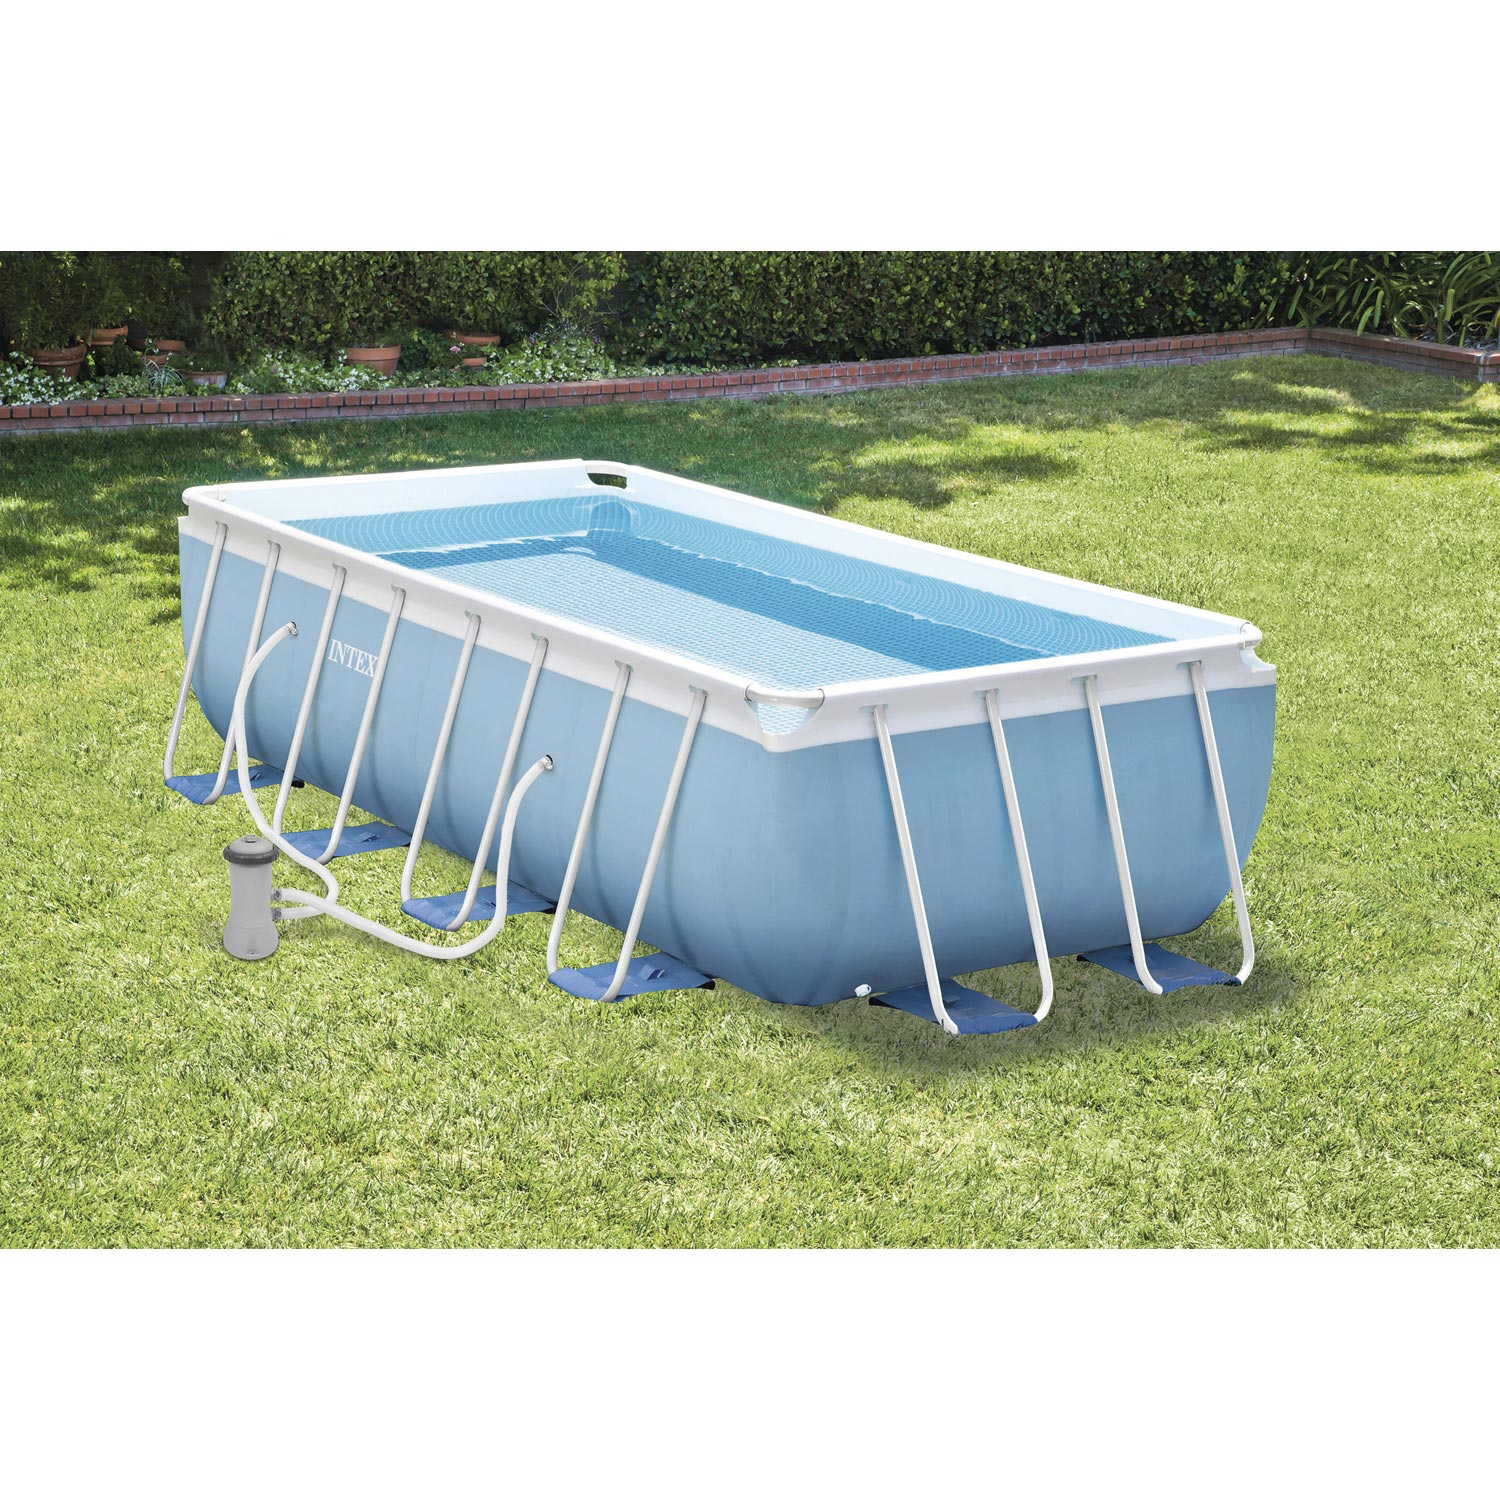 Piscine hors sol autoportante tubulaire prism frame intex for Piscine hors sol imposable